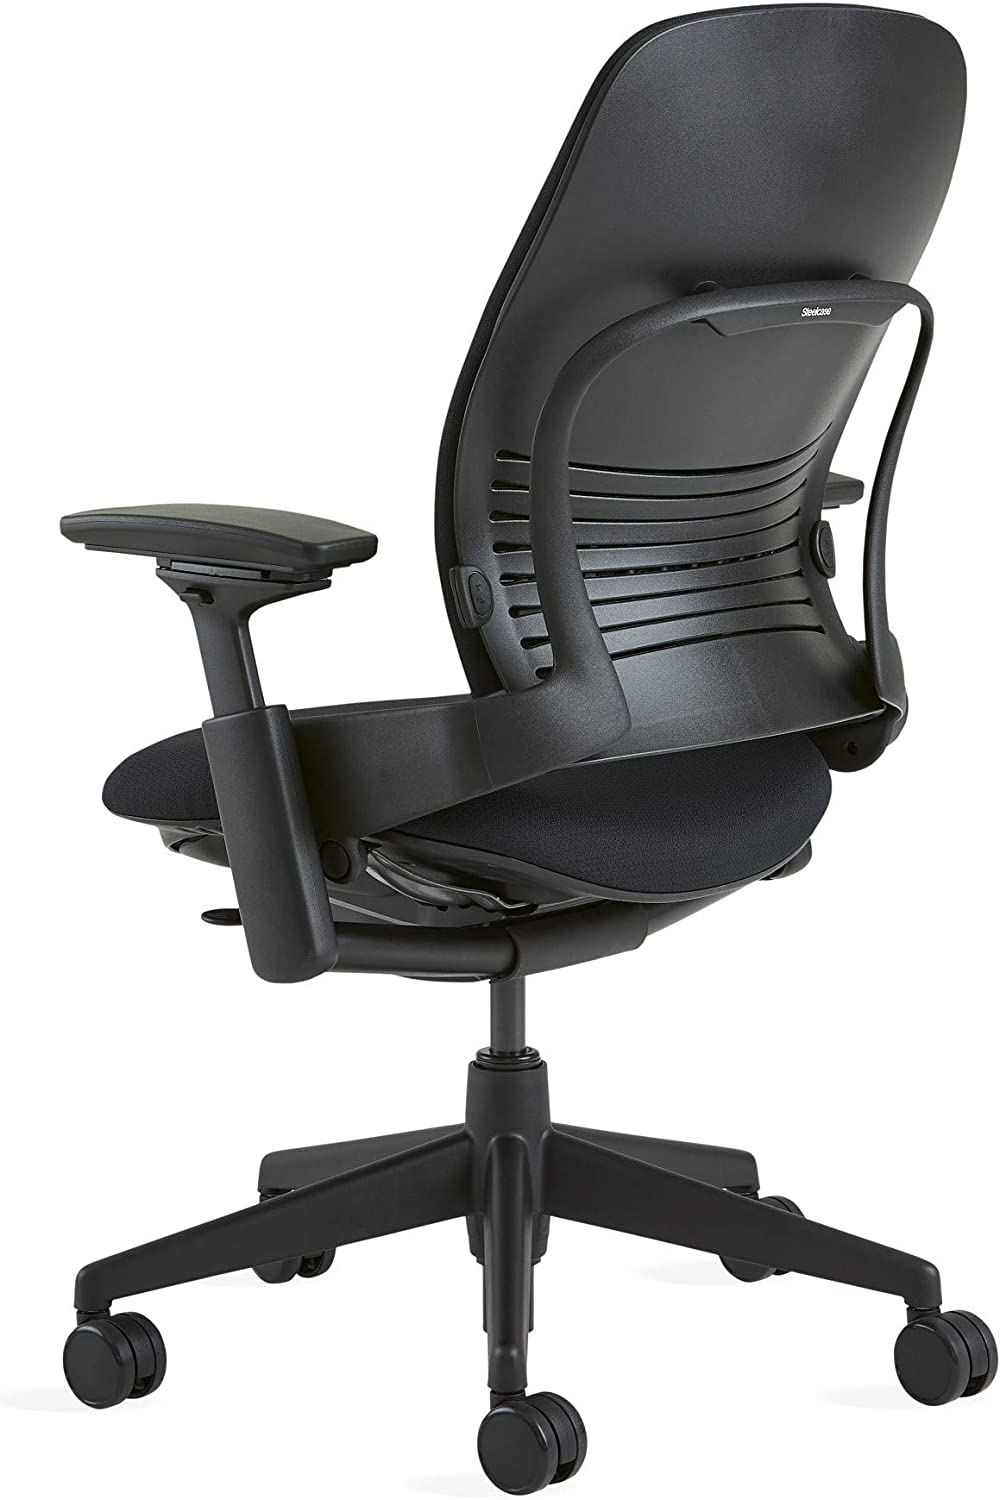 71rvJzU0DdL. AC SL1500 - What is The Best Chair For Sciatica Nerve Problems? Get Relief from Sciatica Pain - ChairPicks